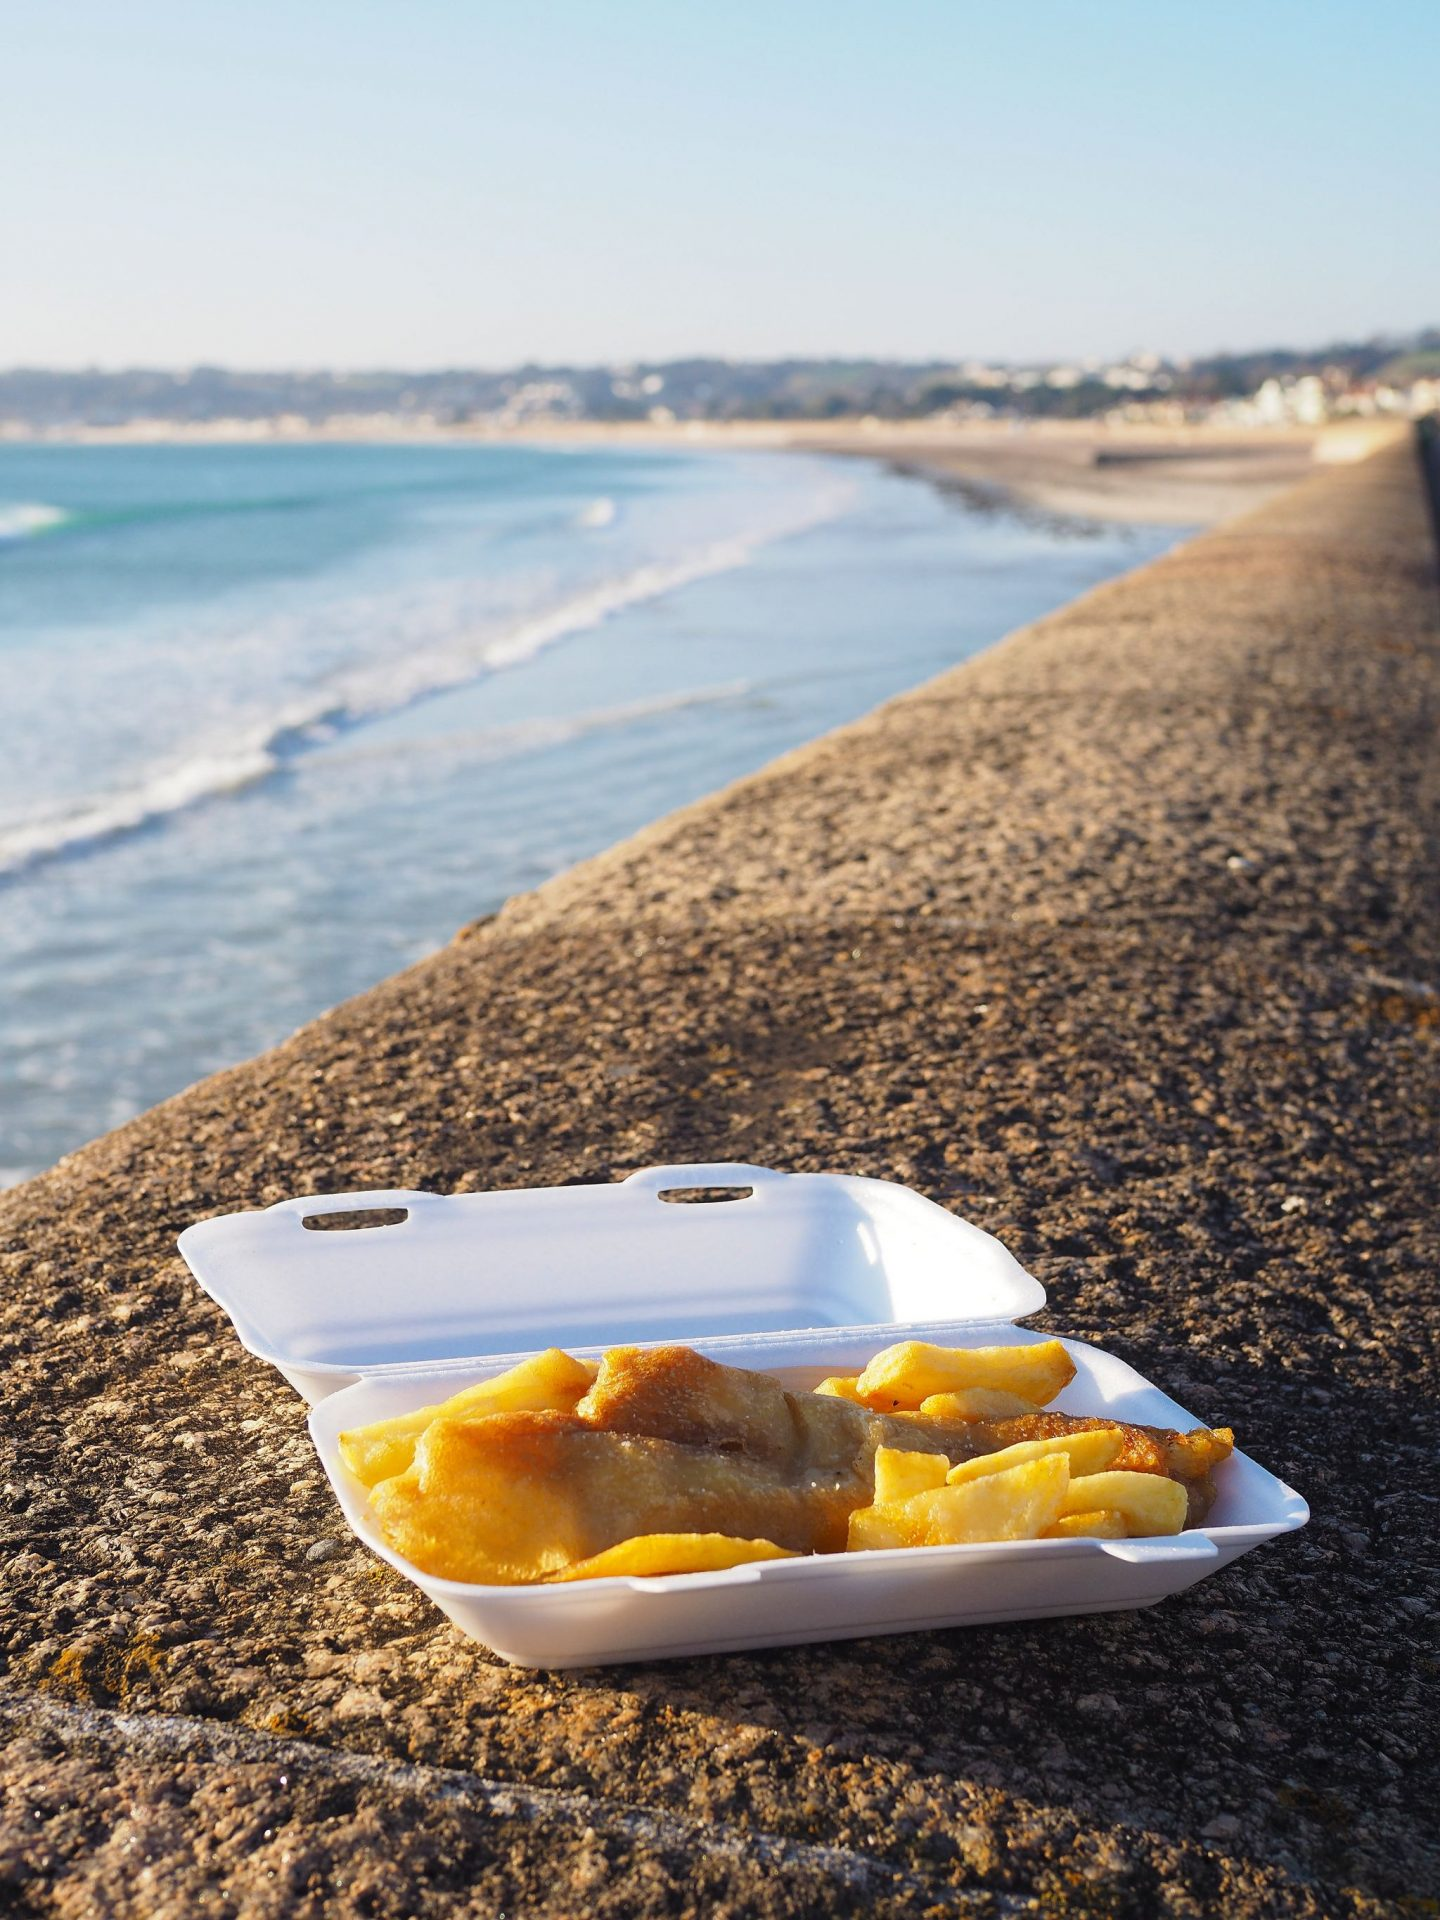 Jersey: Hectors Fish & Chips